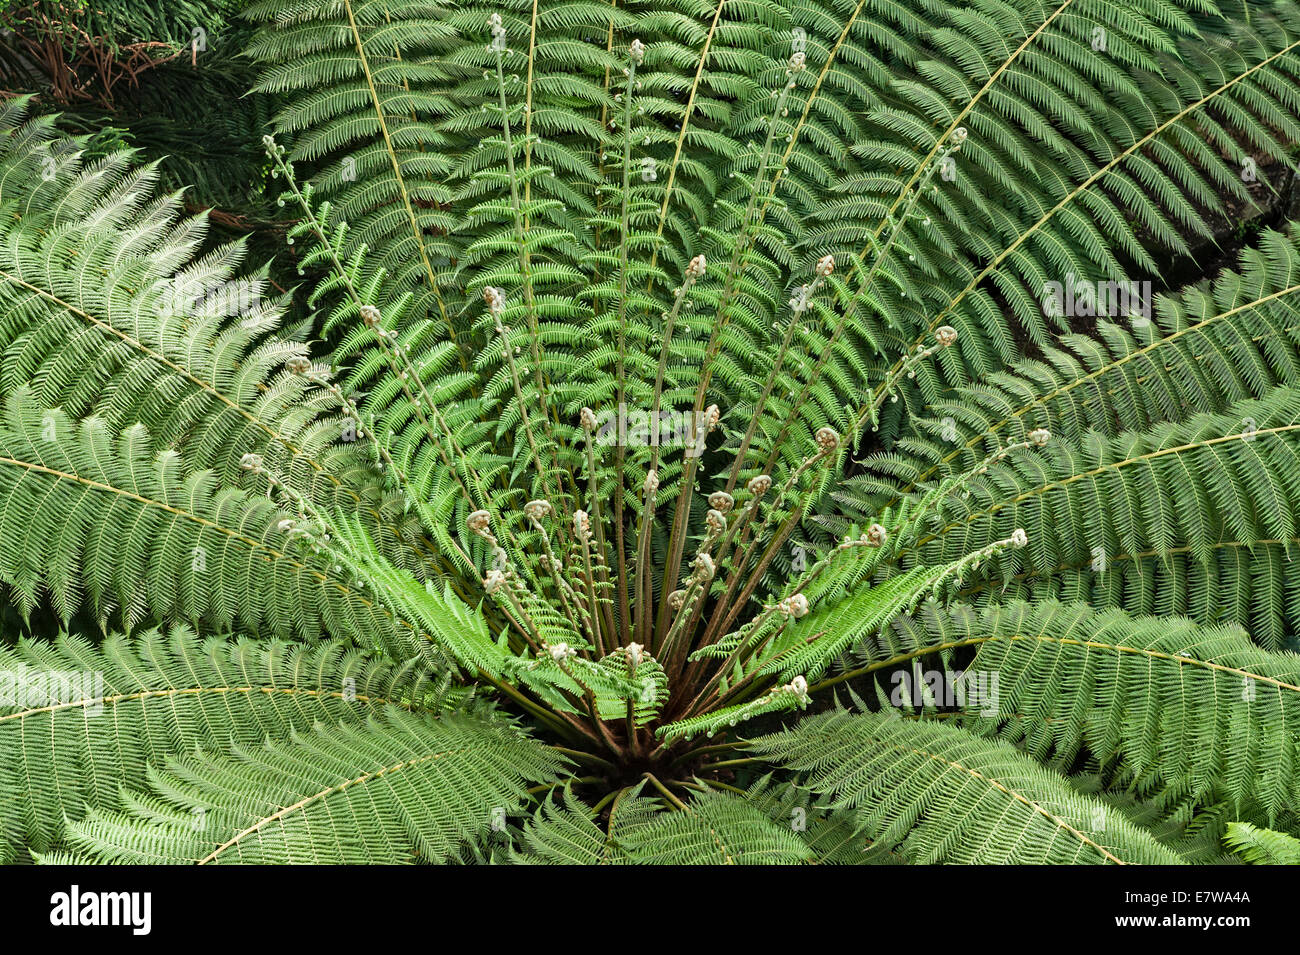 Royal Botanic Gardens, Kew, London.  Fern in the Temperate House, currently closed for restoration - Stock Image